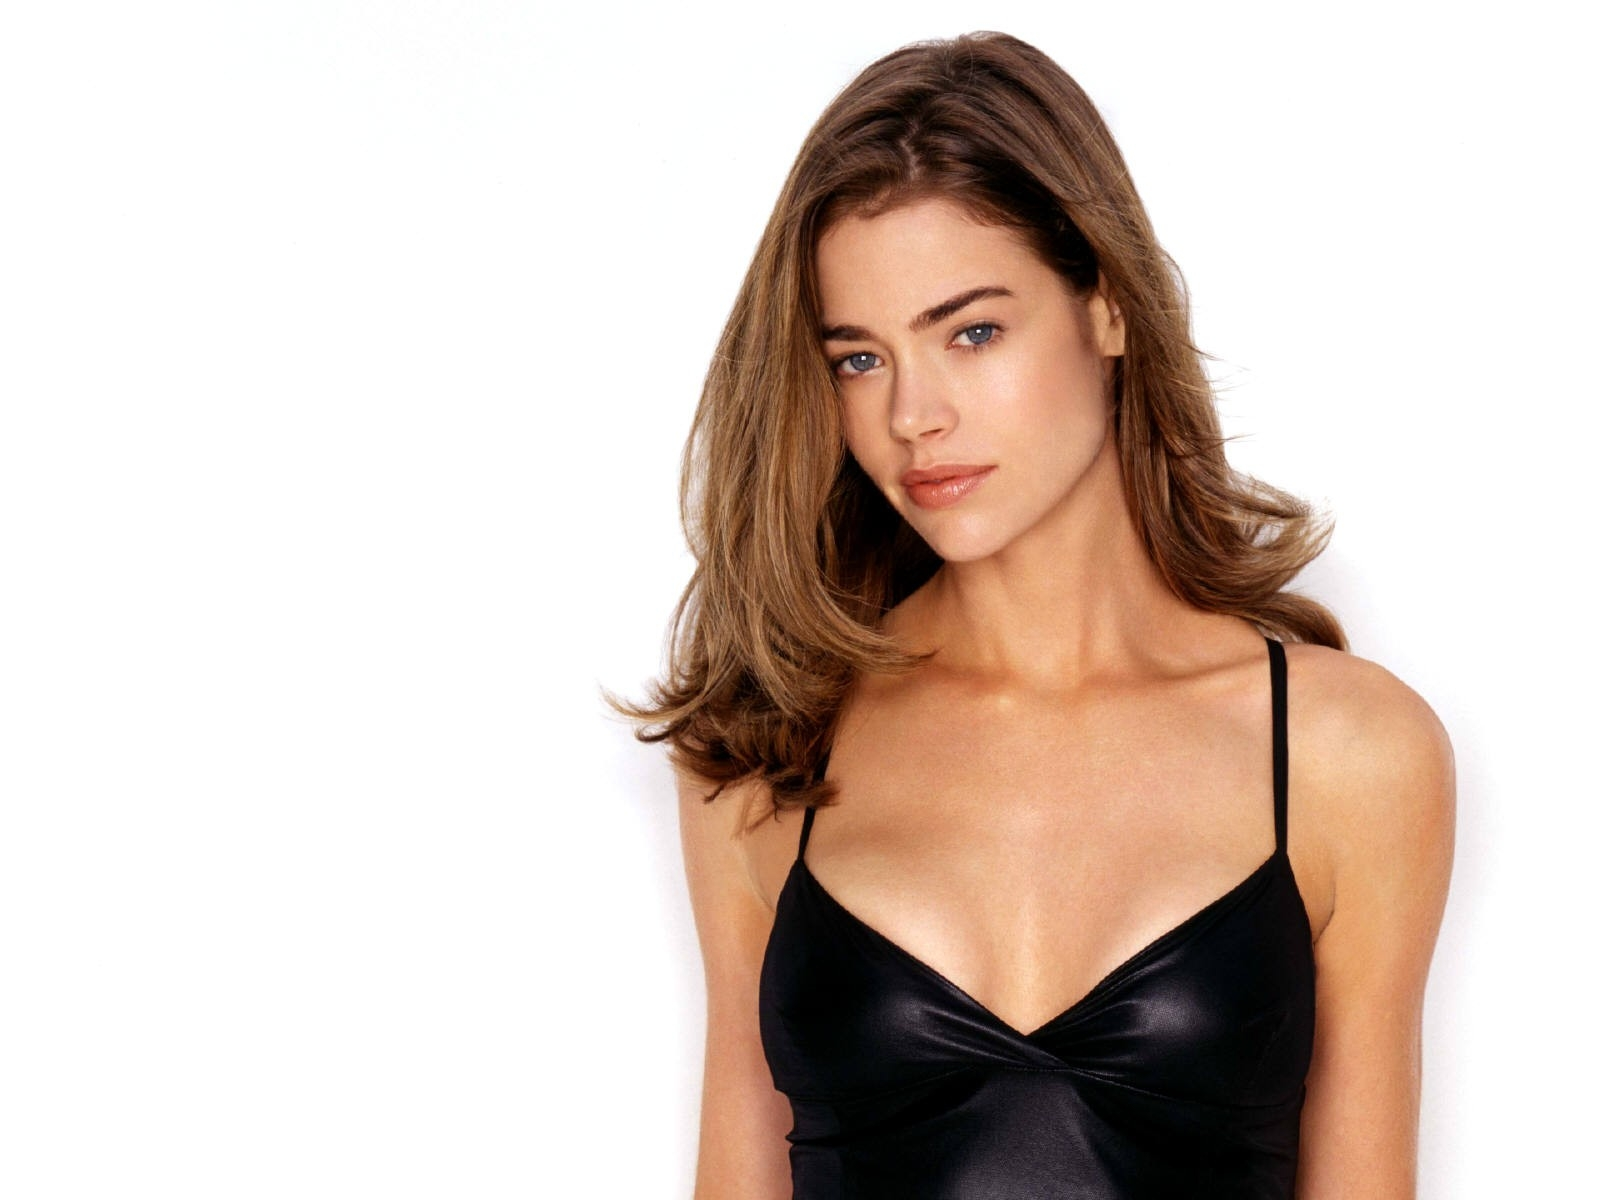 Wallpaper di Denise Richards - 58